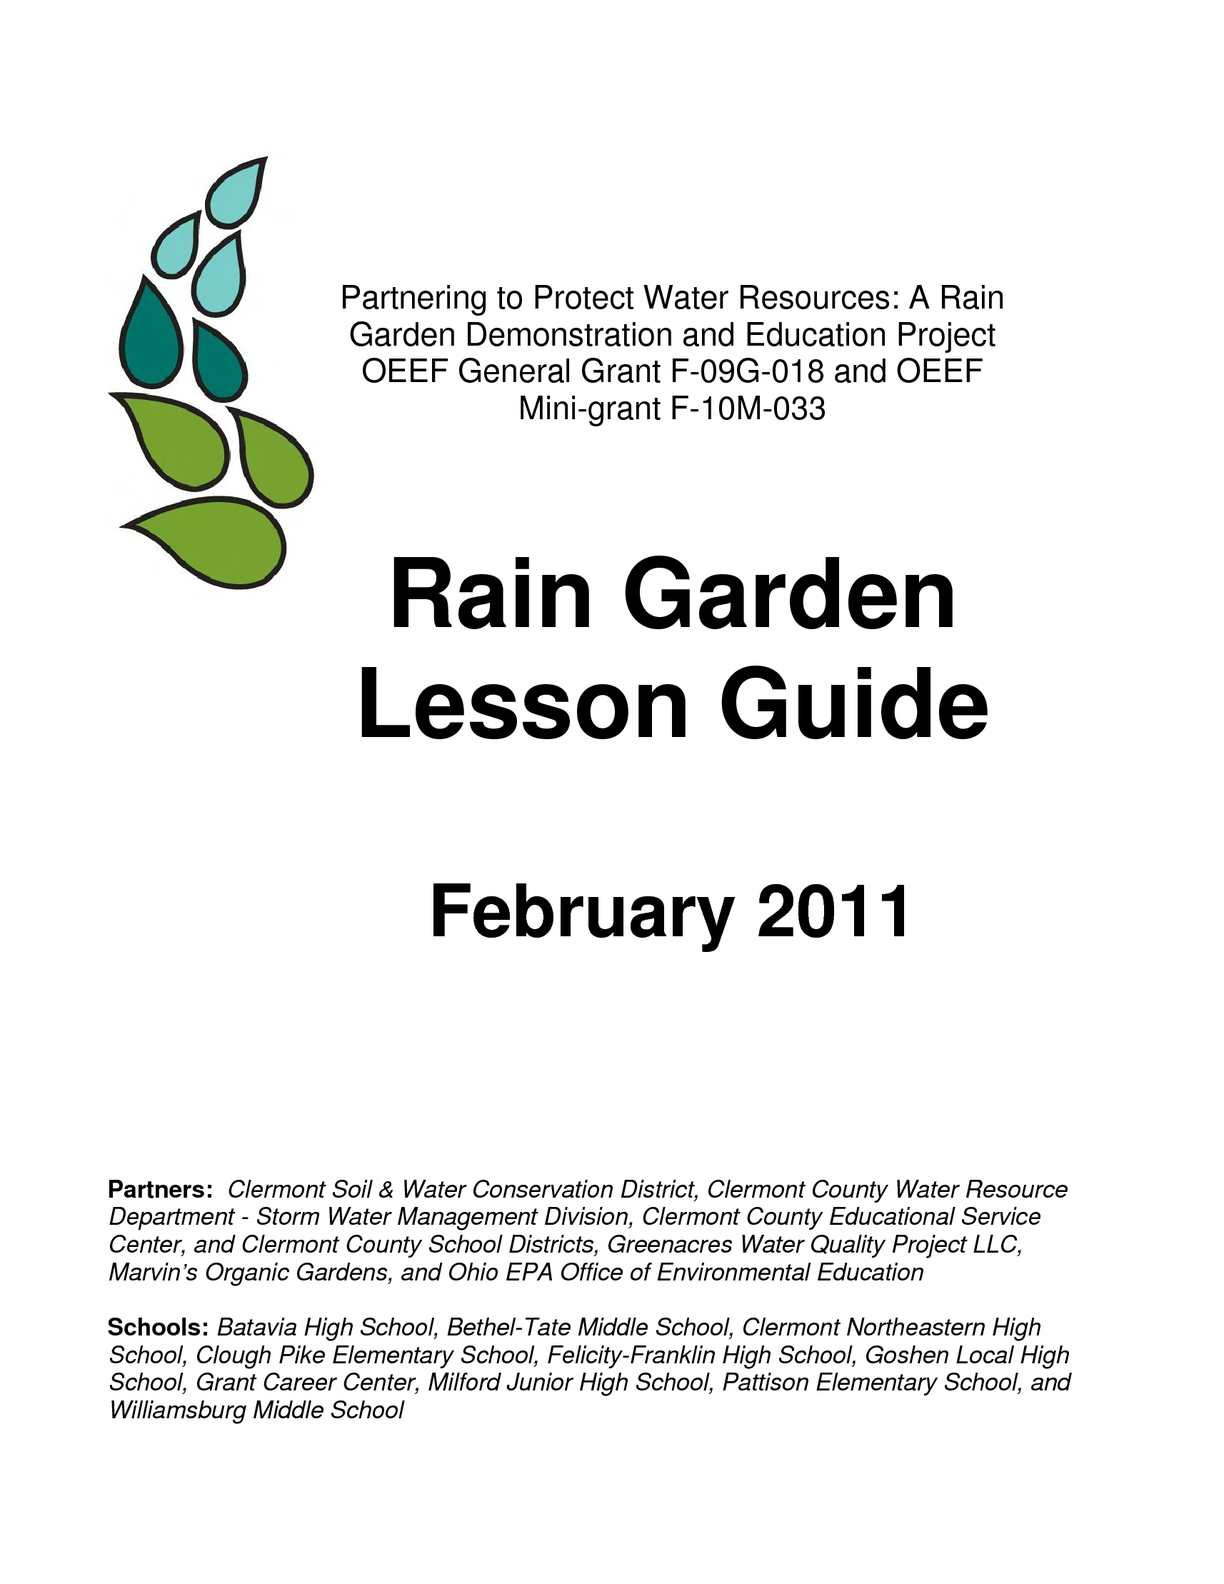 Water Quality Worksheet Middle School Calaméo Oh Rain Garden Lesson Guide for Schools Grades 3 12